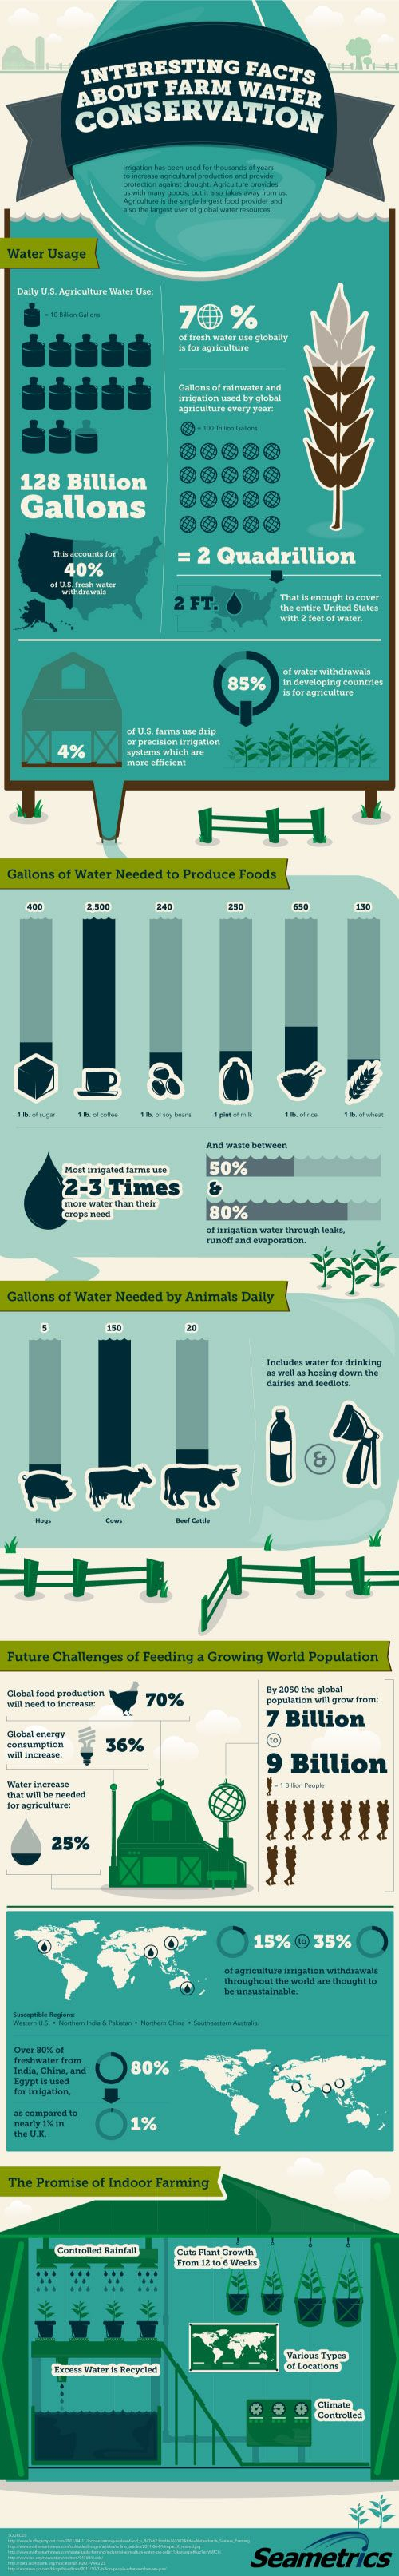 Farm-Water-Conservation-infographic  Find always more on http://infographicsmania.com